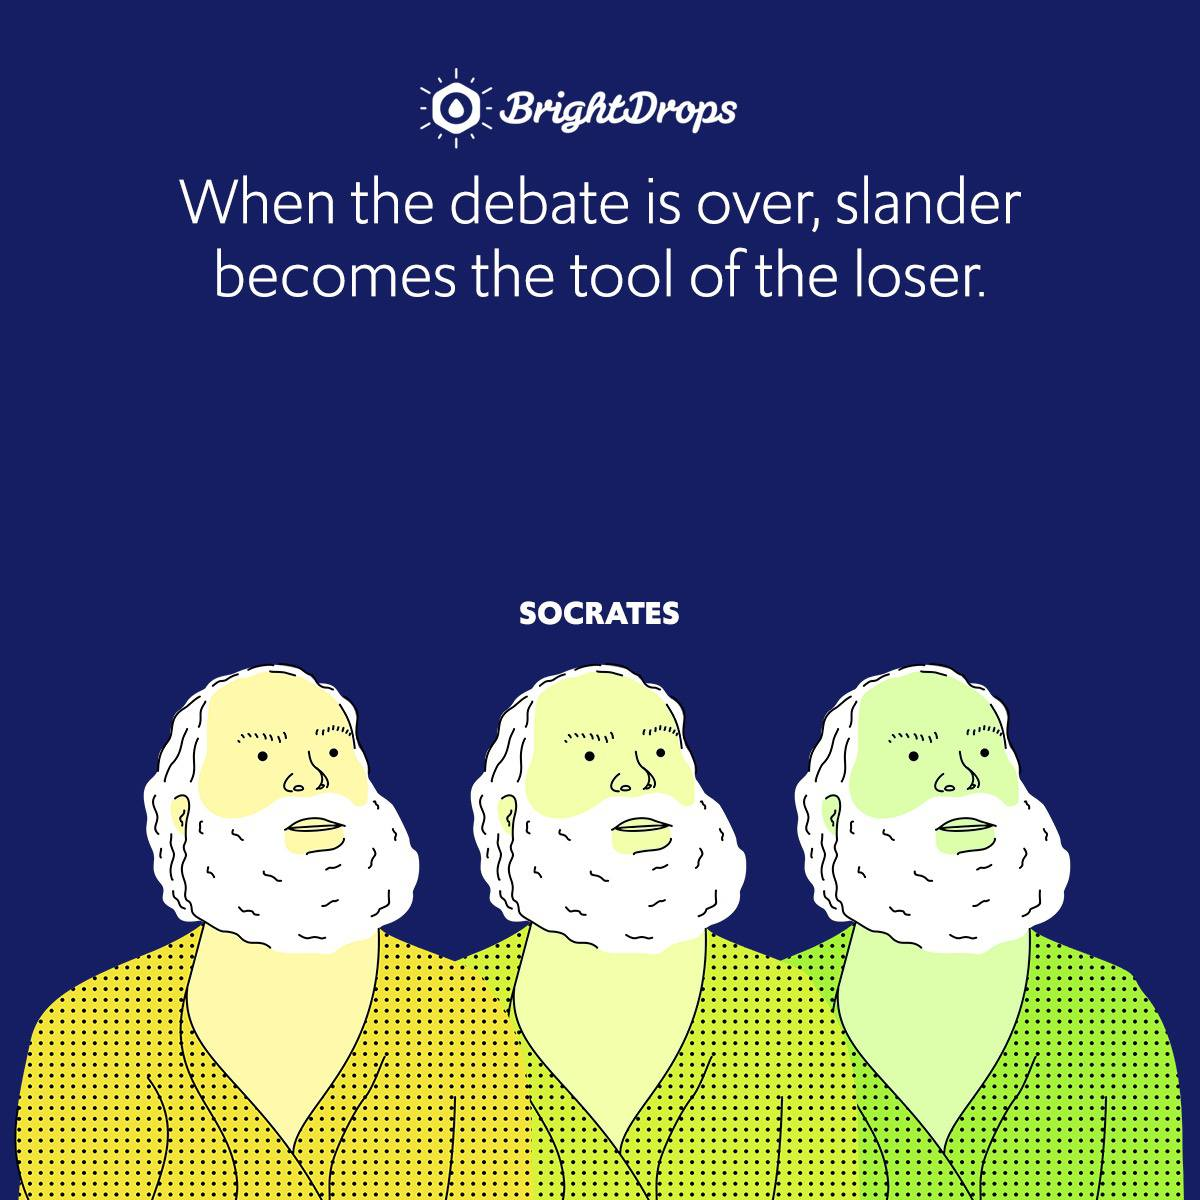 When the debate is over, slander becomes the tool of the loser.